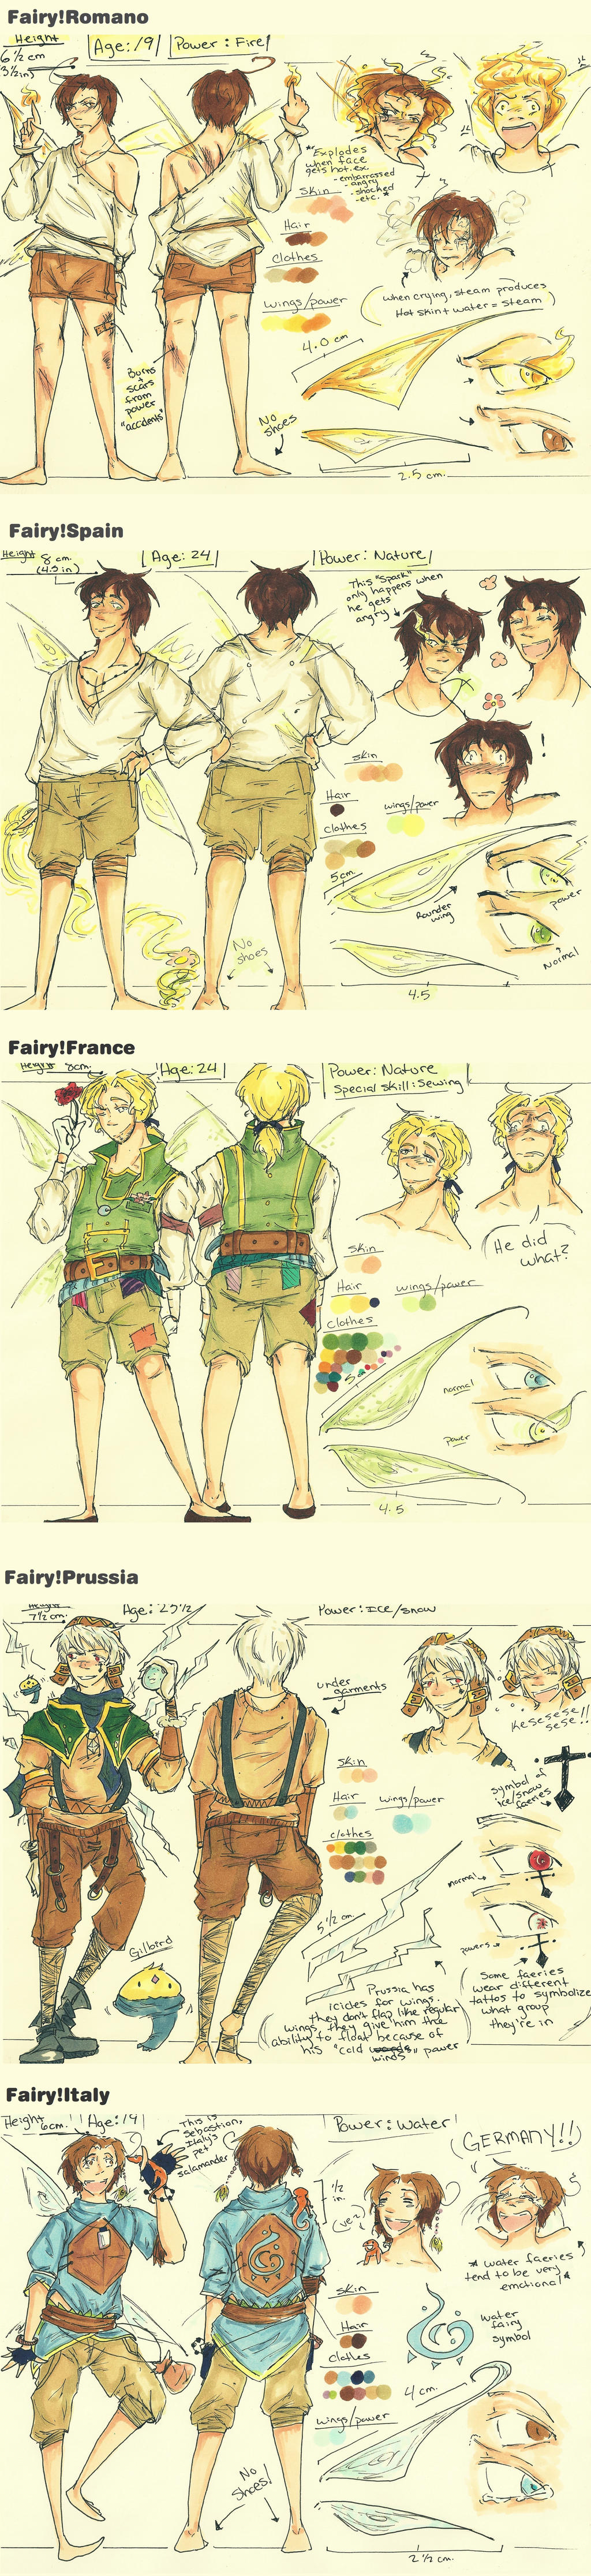 Fairy!Hetalia Character Sheets: PART 1 by edwardsuoh13